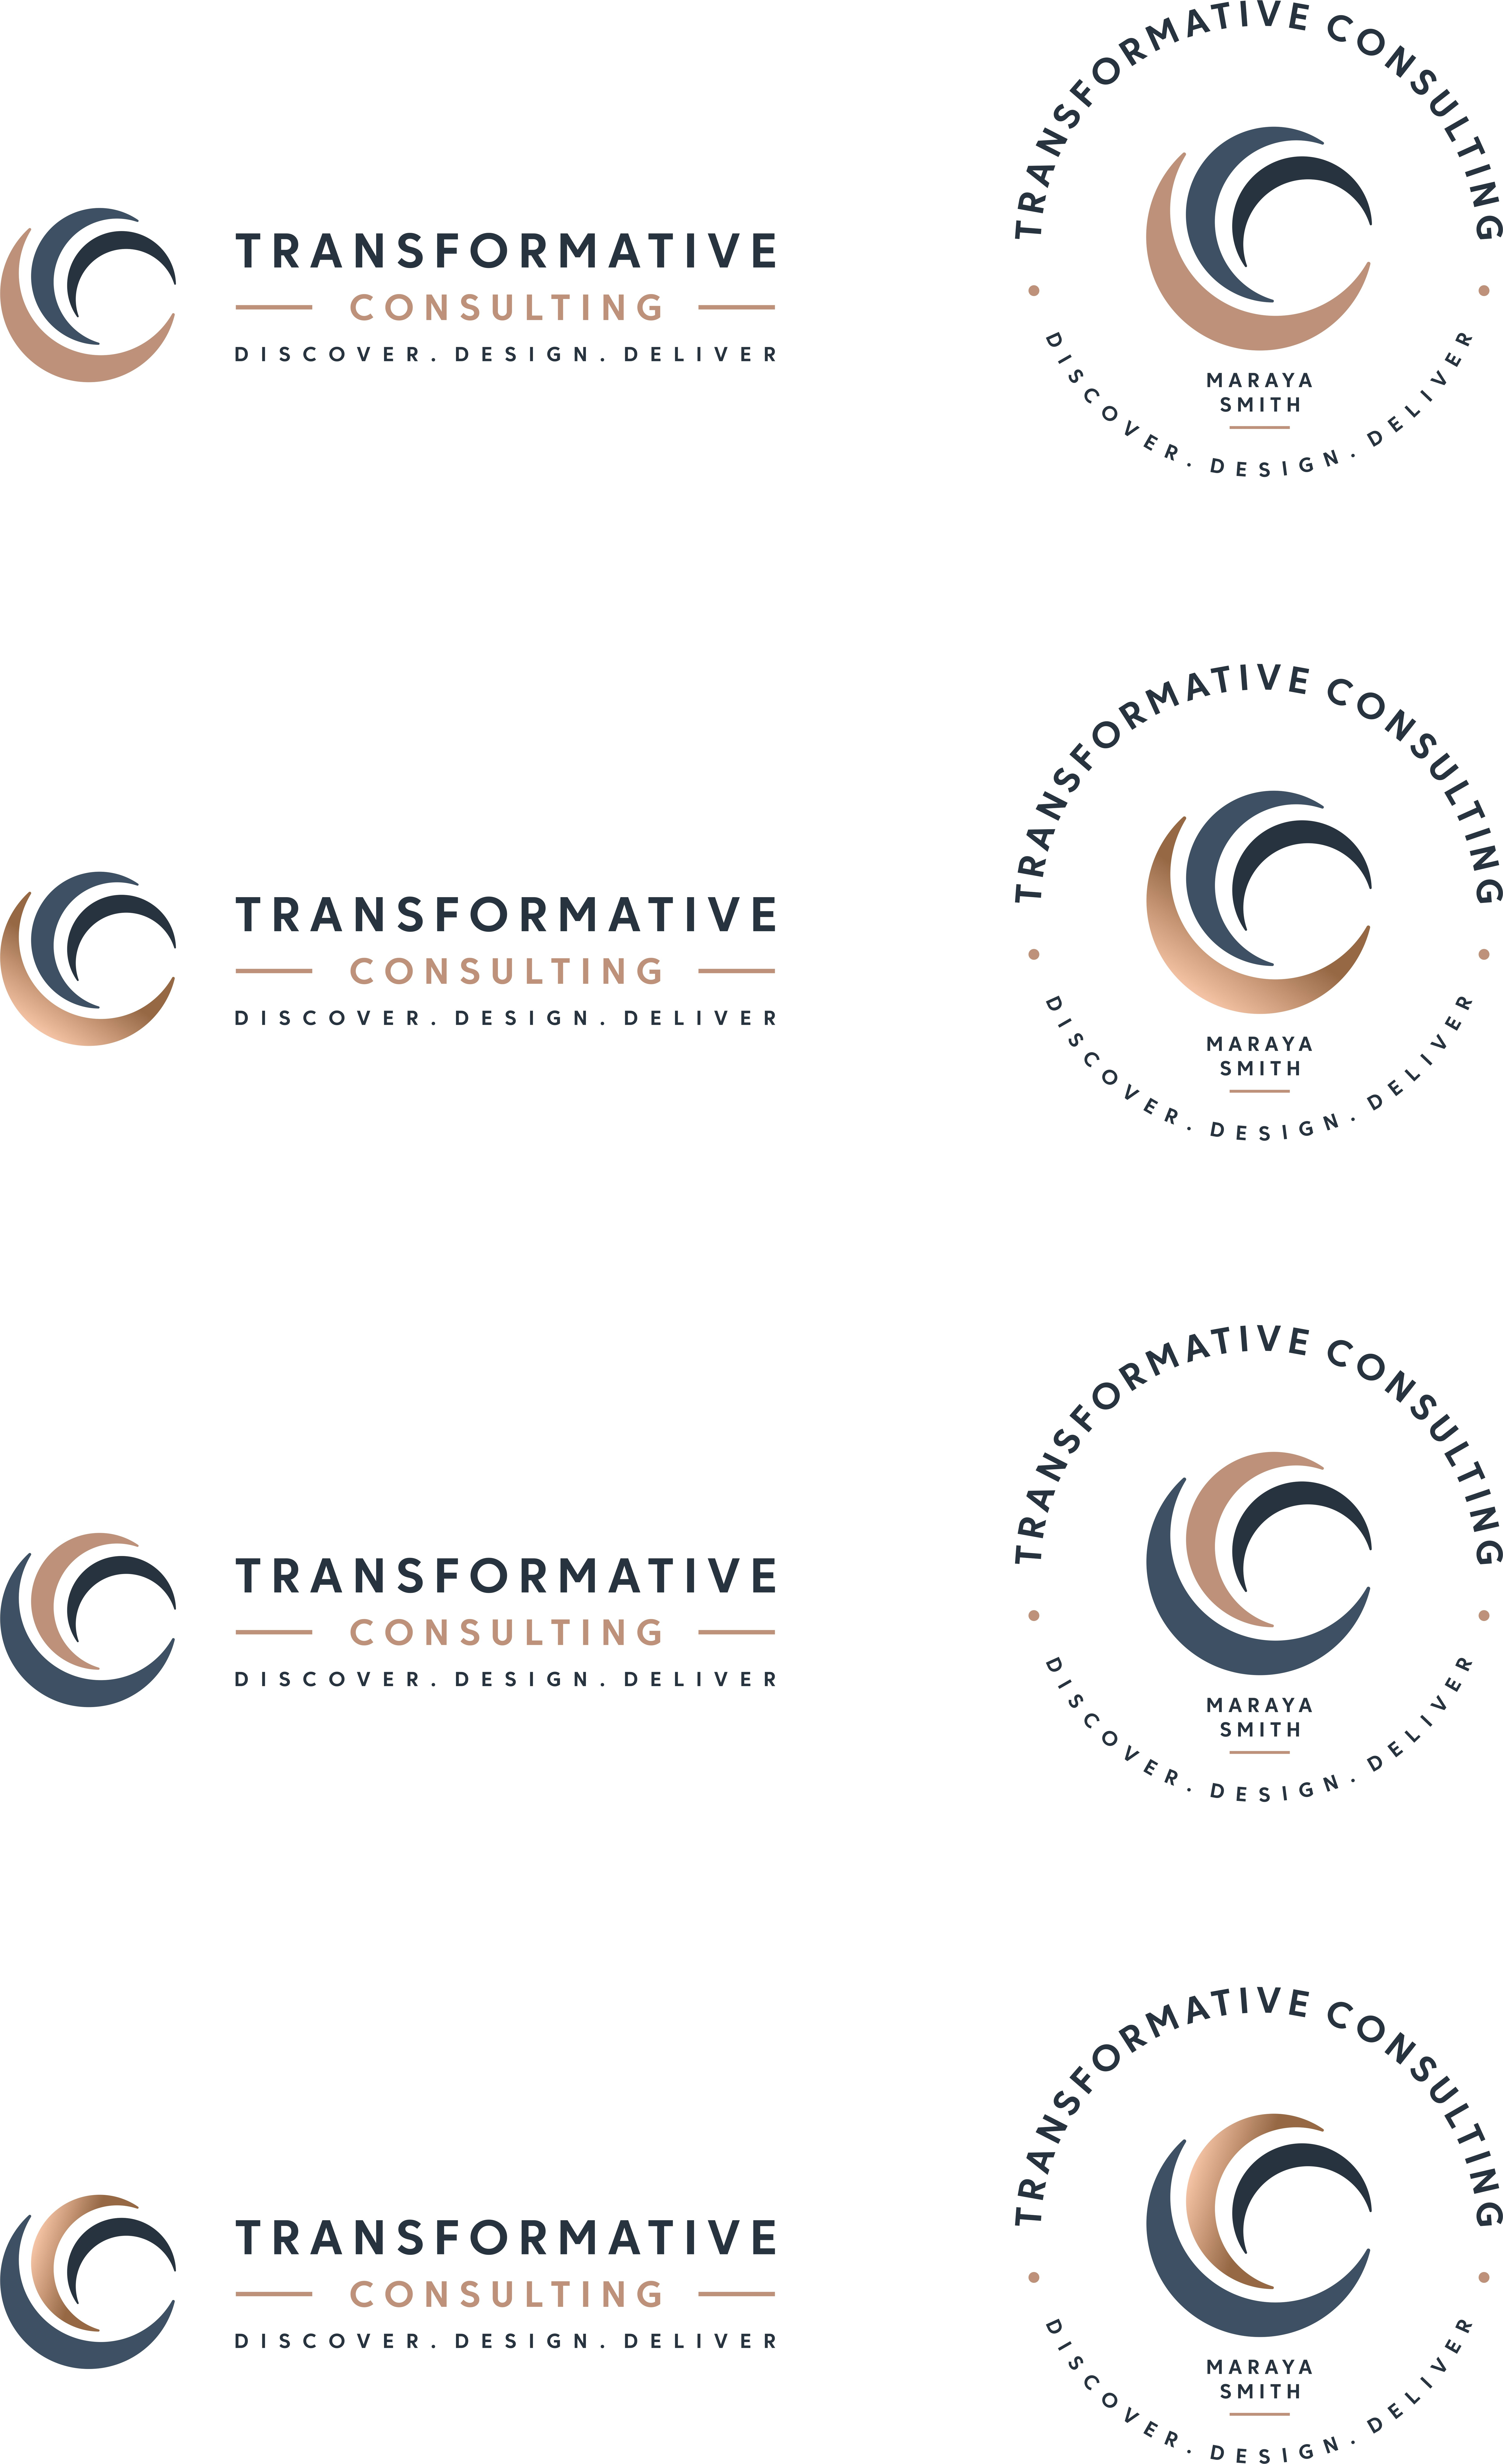 New Logo for Transformative Consulting